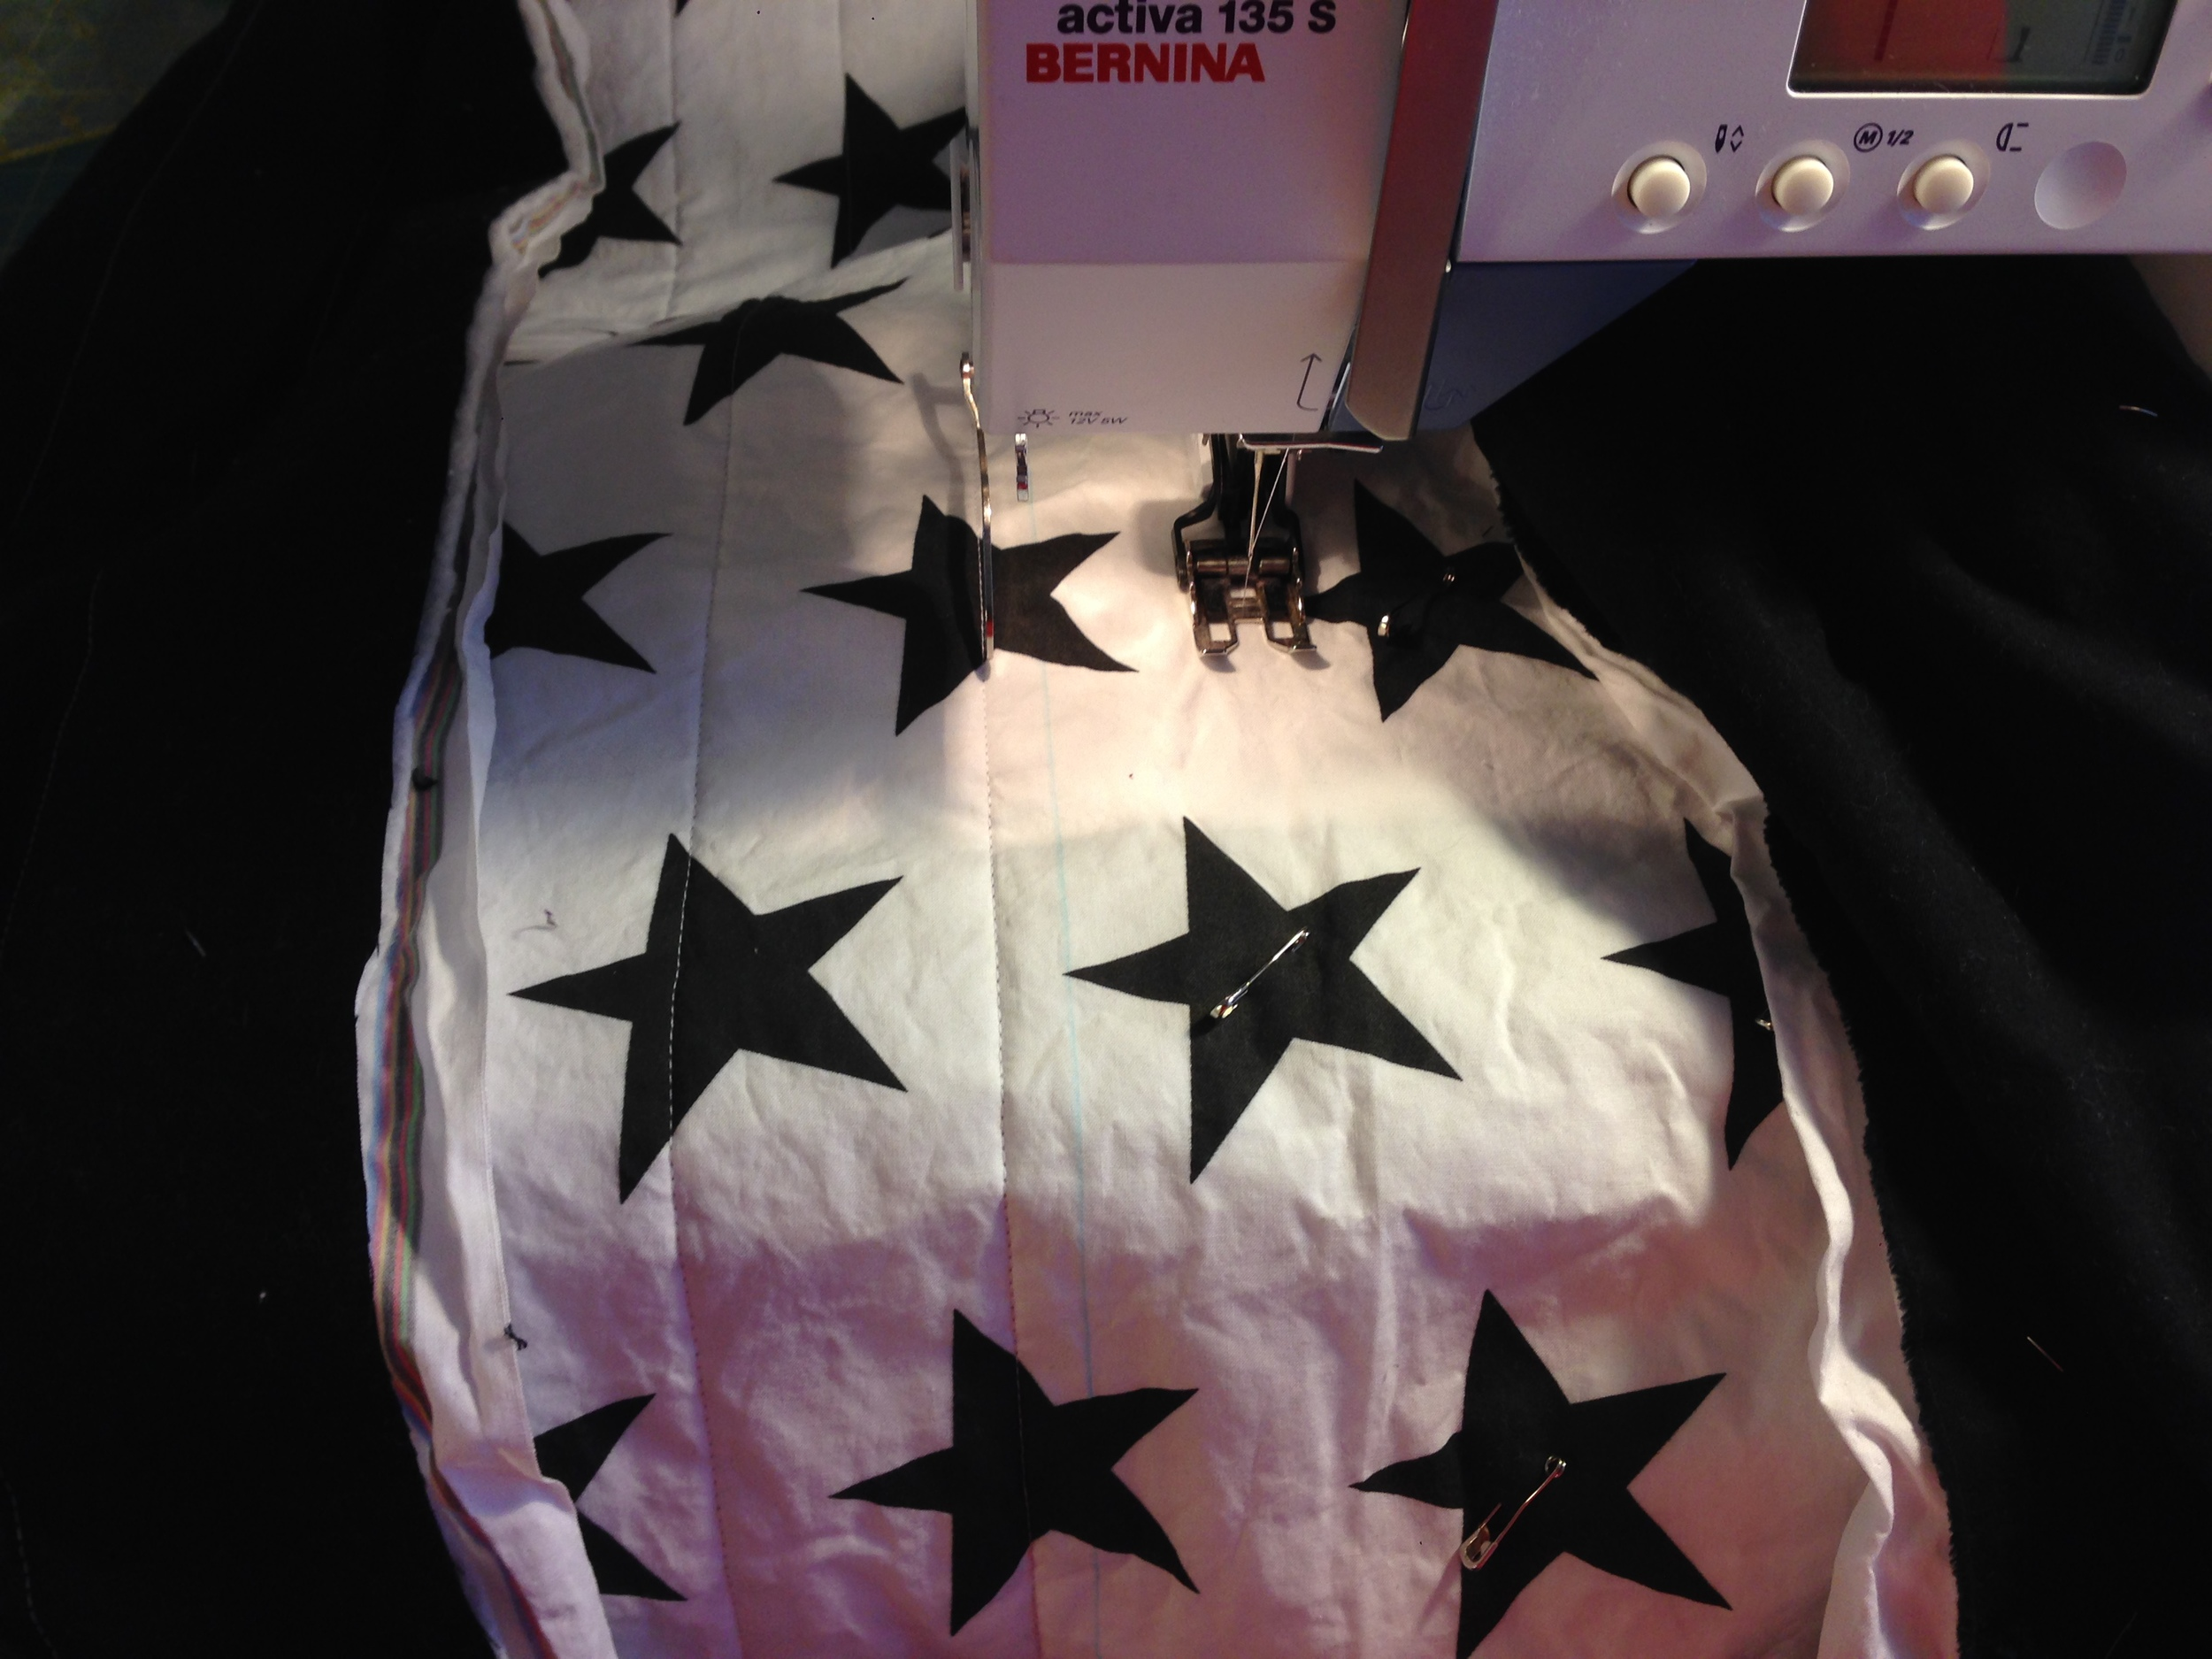 black star fabric has just arrived and is ready for quilting